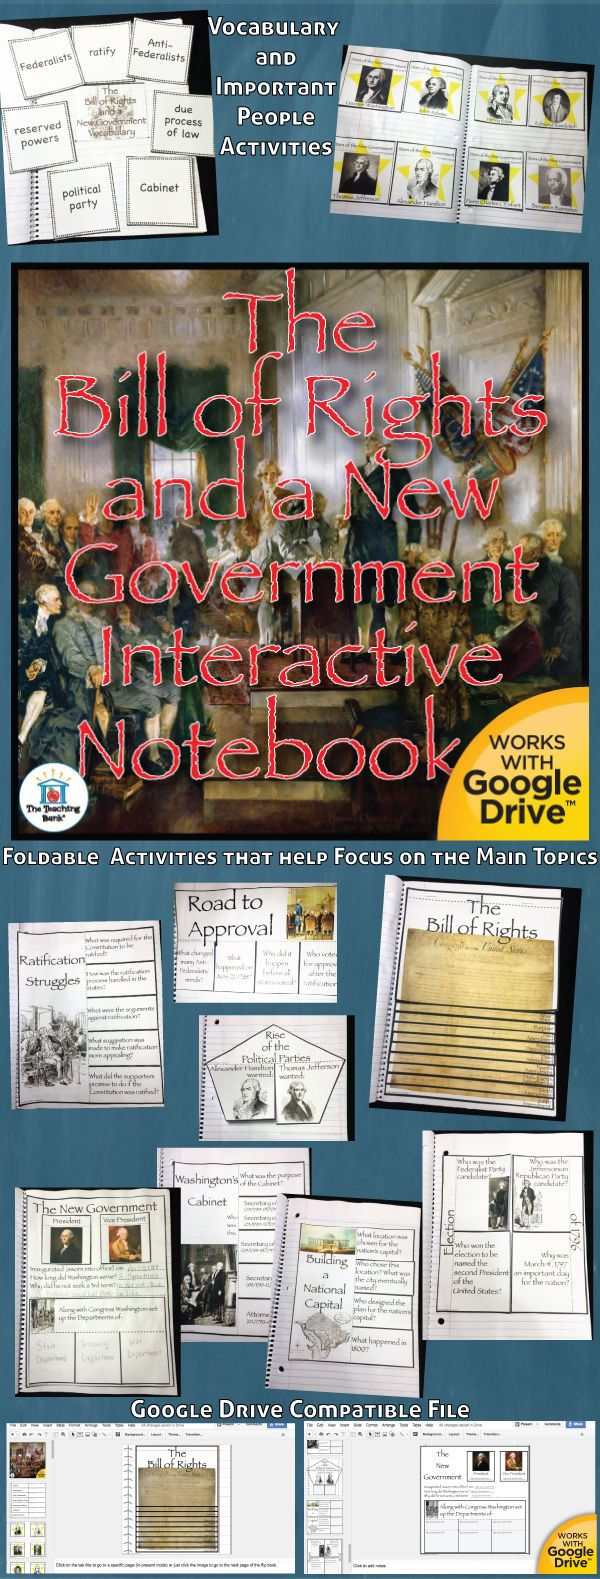 The Bill of Rights and New Government Interactive Notebook, which works for both print and Google Drive™, investigates and helps gain understanding of what the Bill of Rights is and why it was added to the Constitution and also of how the new government of the United States was set up. Geared as a unit in the 5th grade study of United States History.